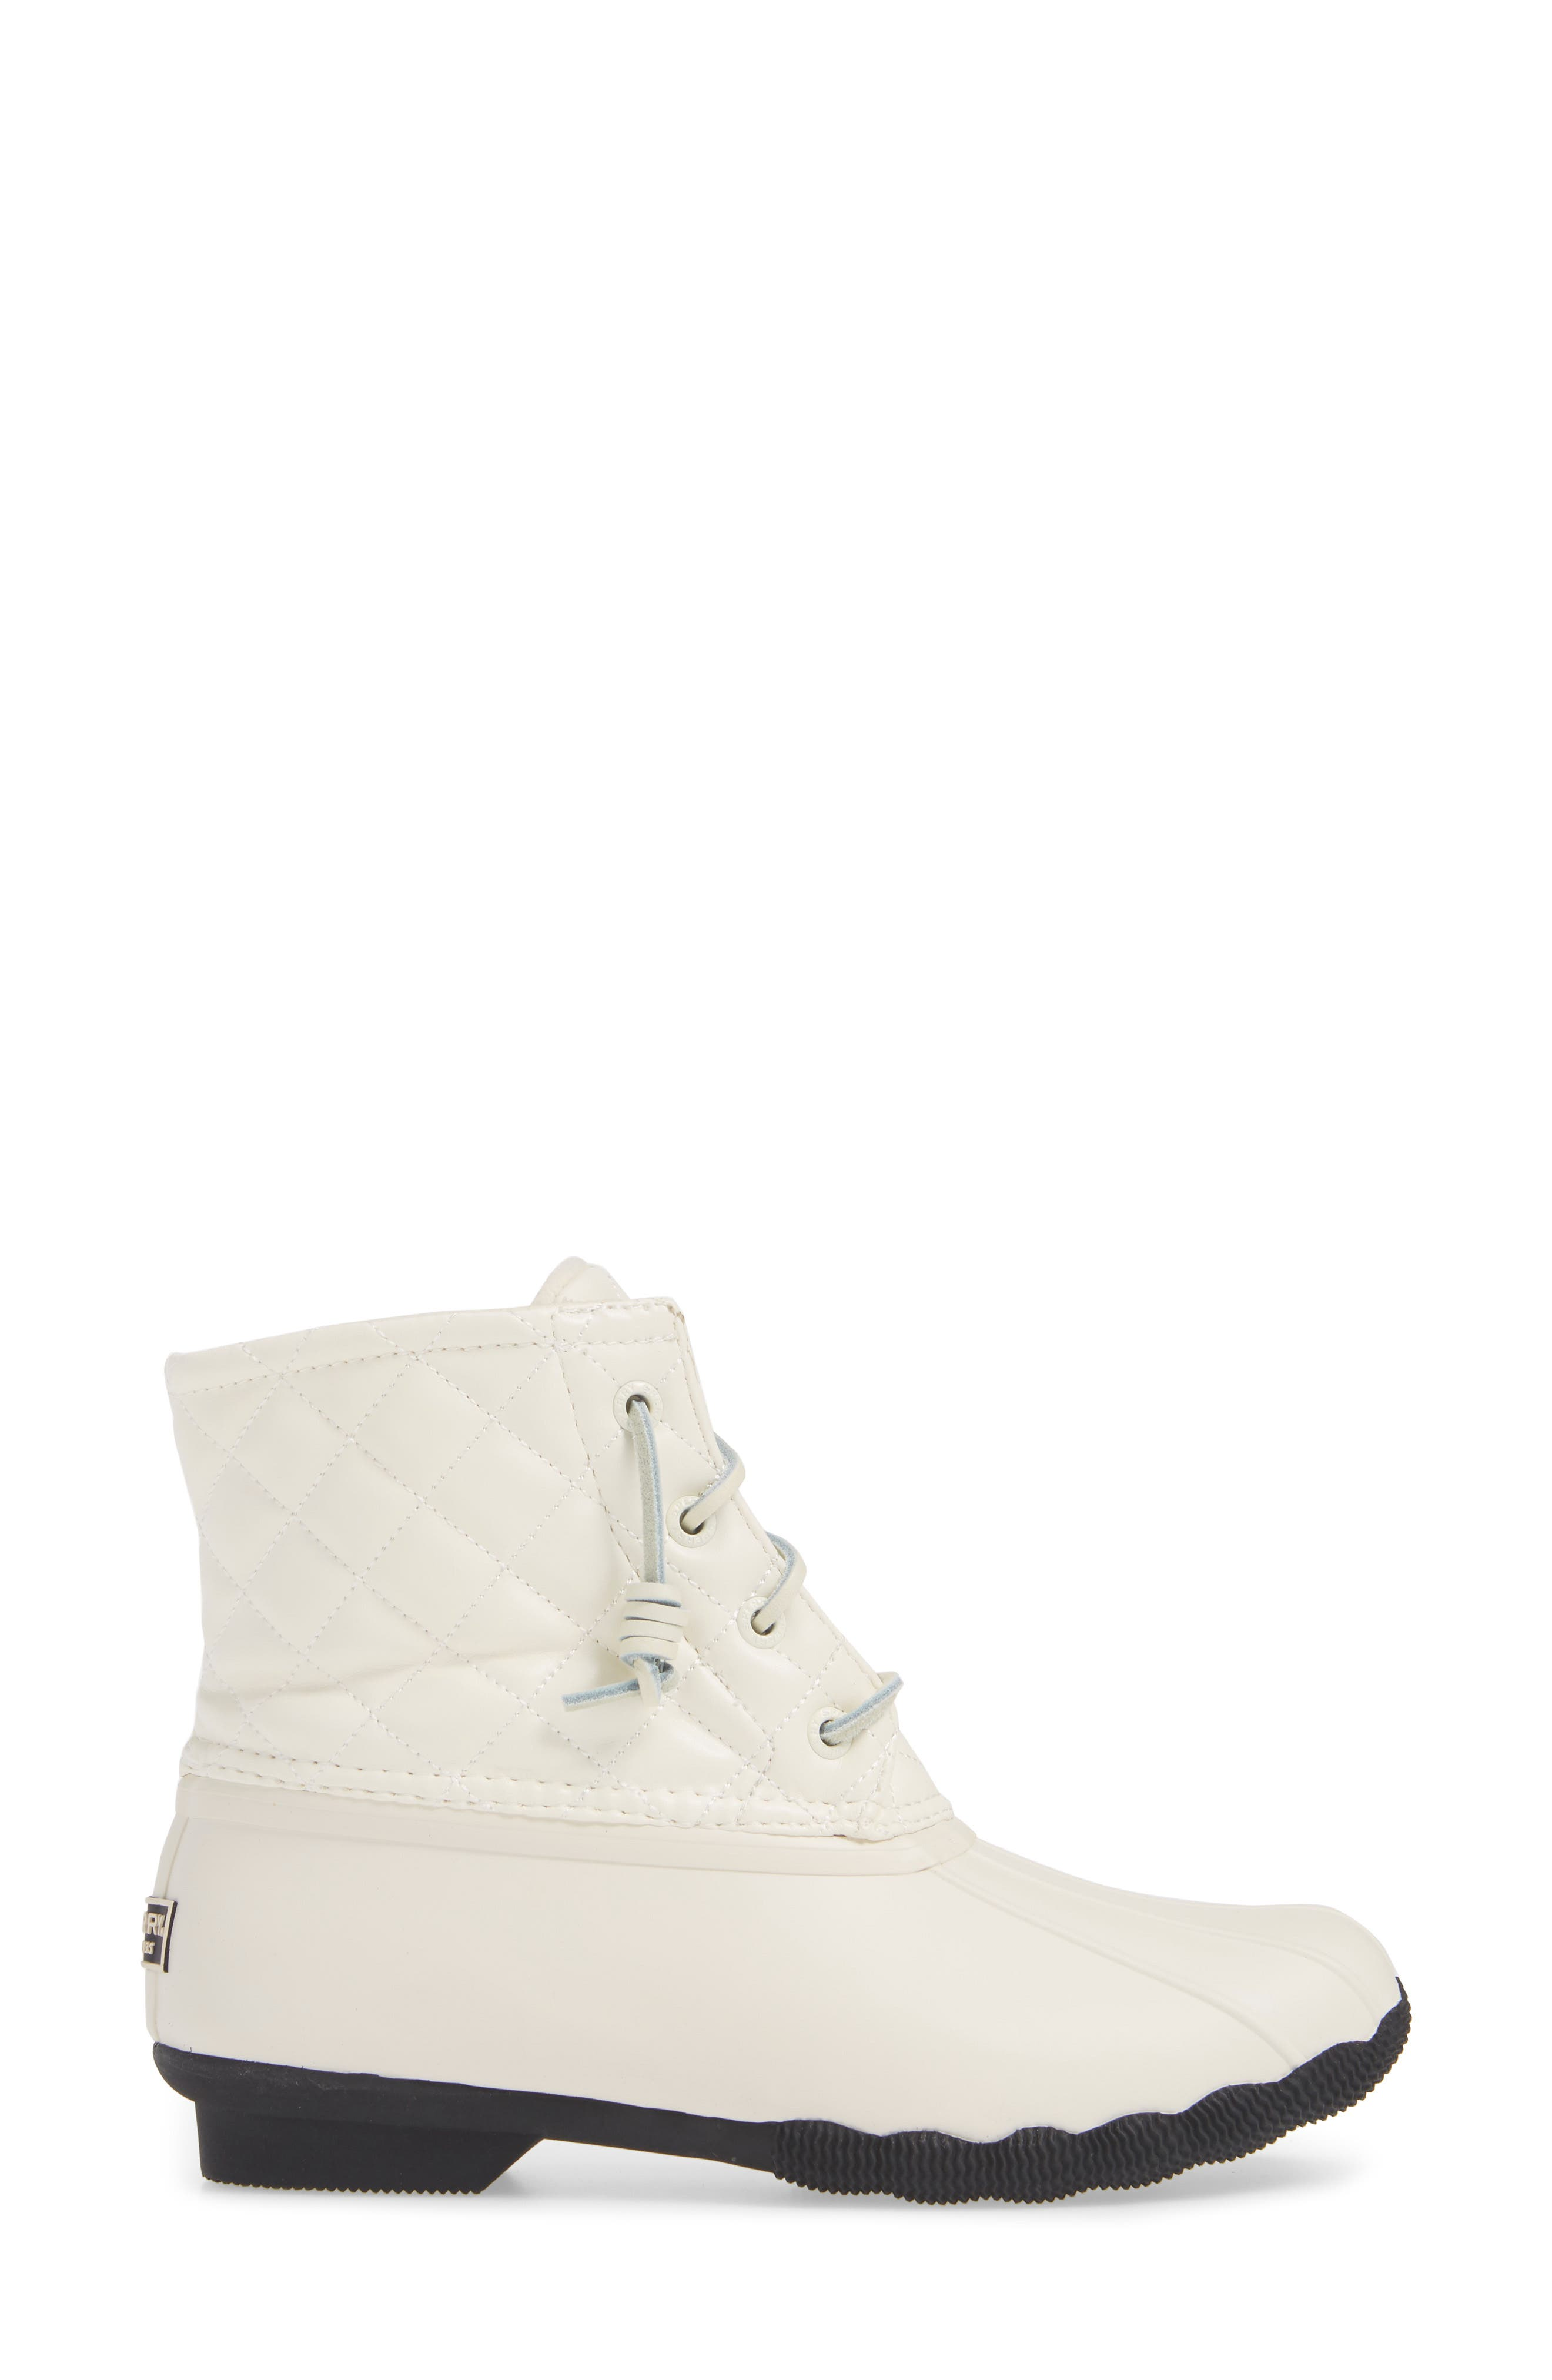 Quilted Luxe Saltwater Waterproof Bootie,                             Alternate thumbnail 3, color,                             IVORY